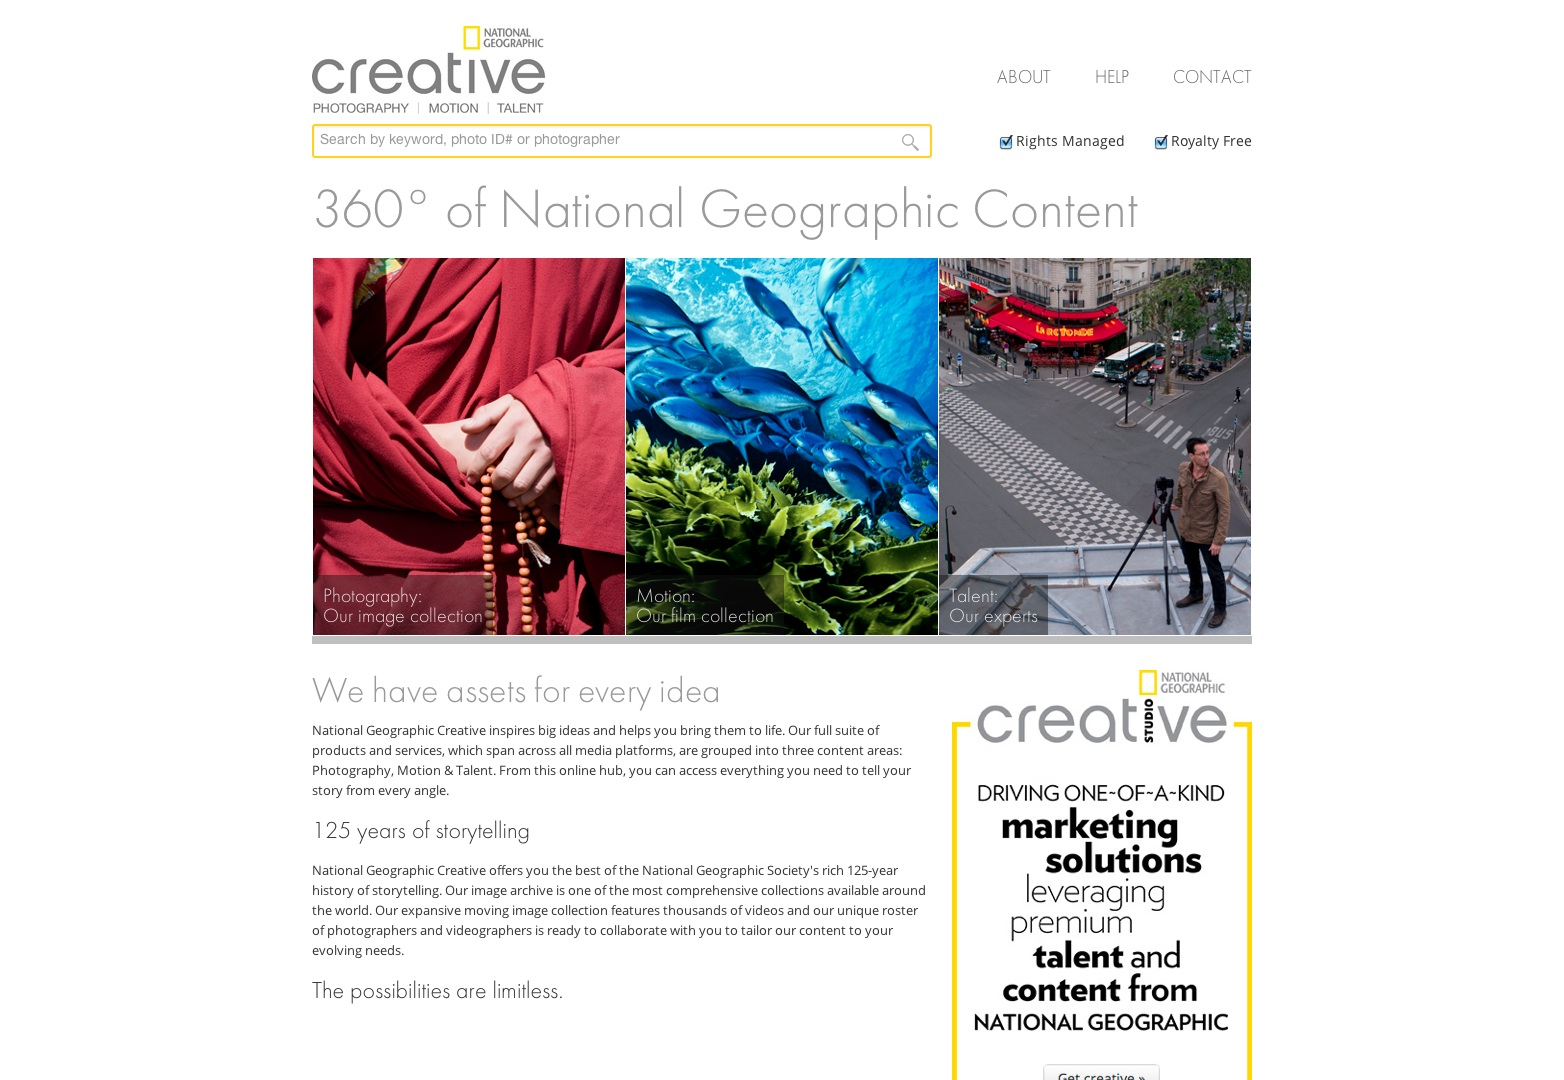 Stock Photography, imágenes sin royalties, movimiento y talento | National Geographic Creative